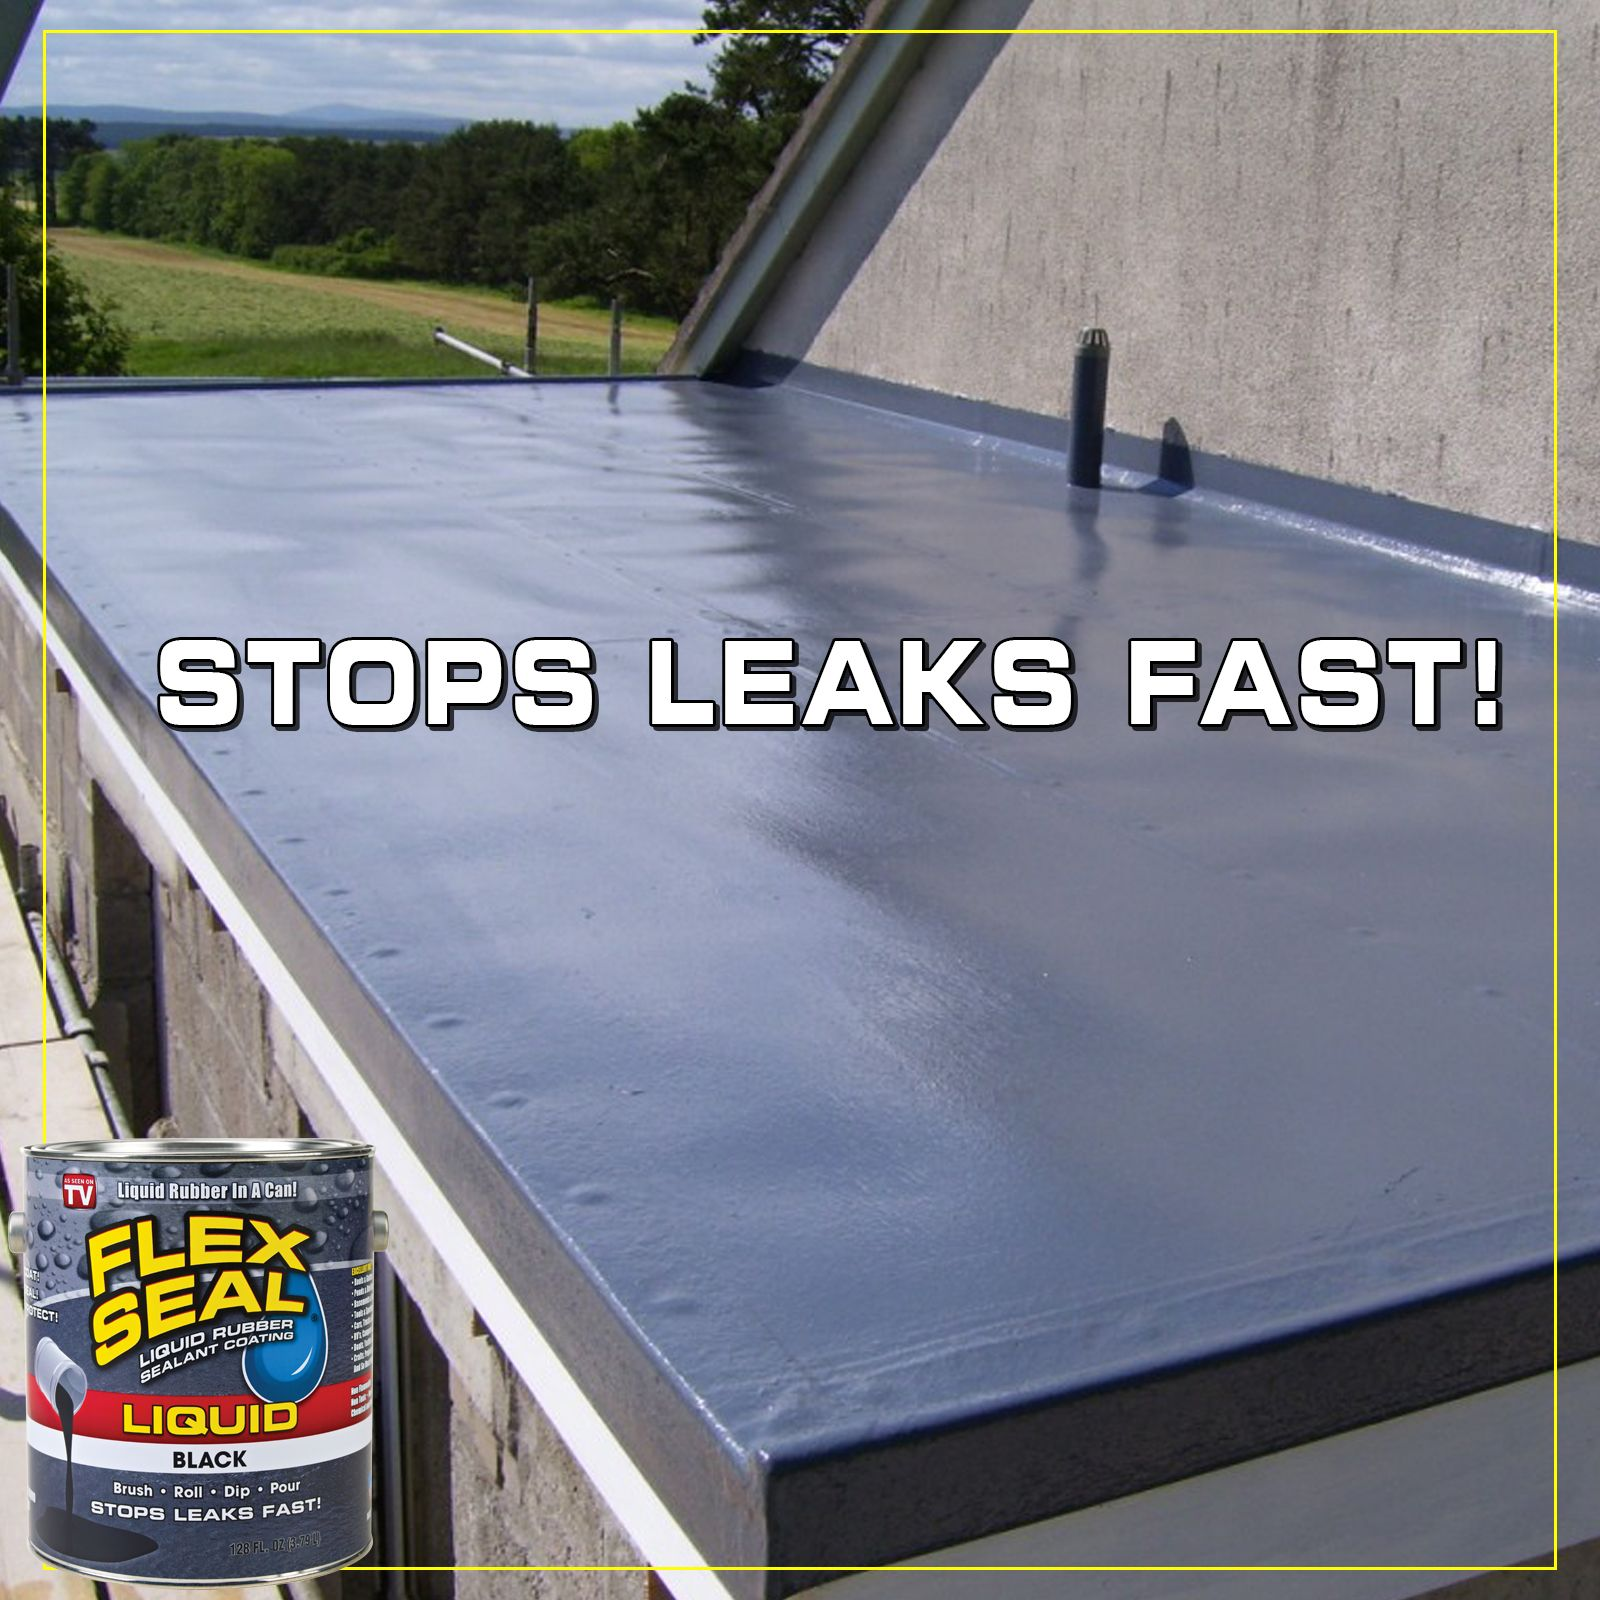 Flex Seal Liquid Liquid Rubber In A Can Low Prices Liquid Rubber Roof Repair Commercial Building Roof